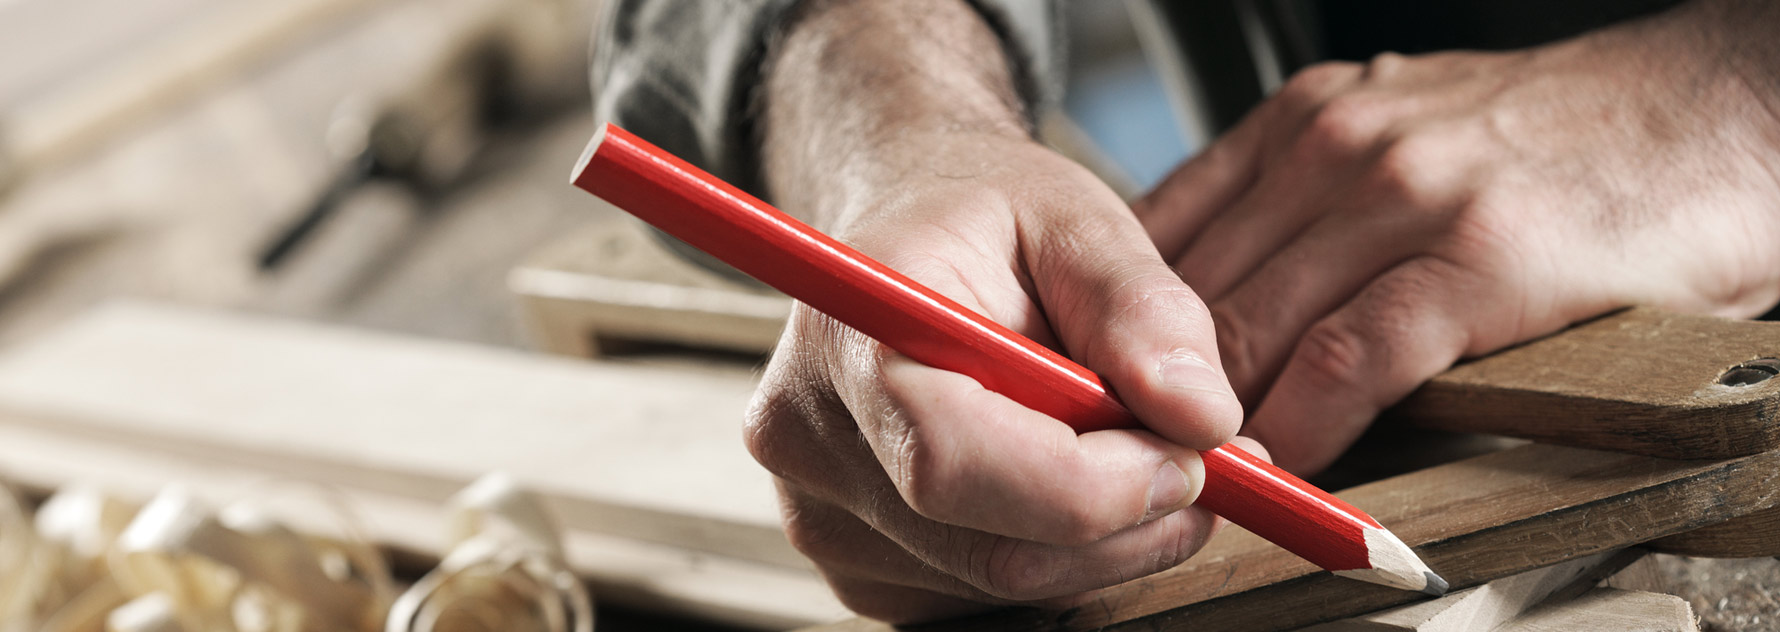 Depositphotos 22367423 Stock Photo Carpenter Tools 1780x632k